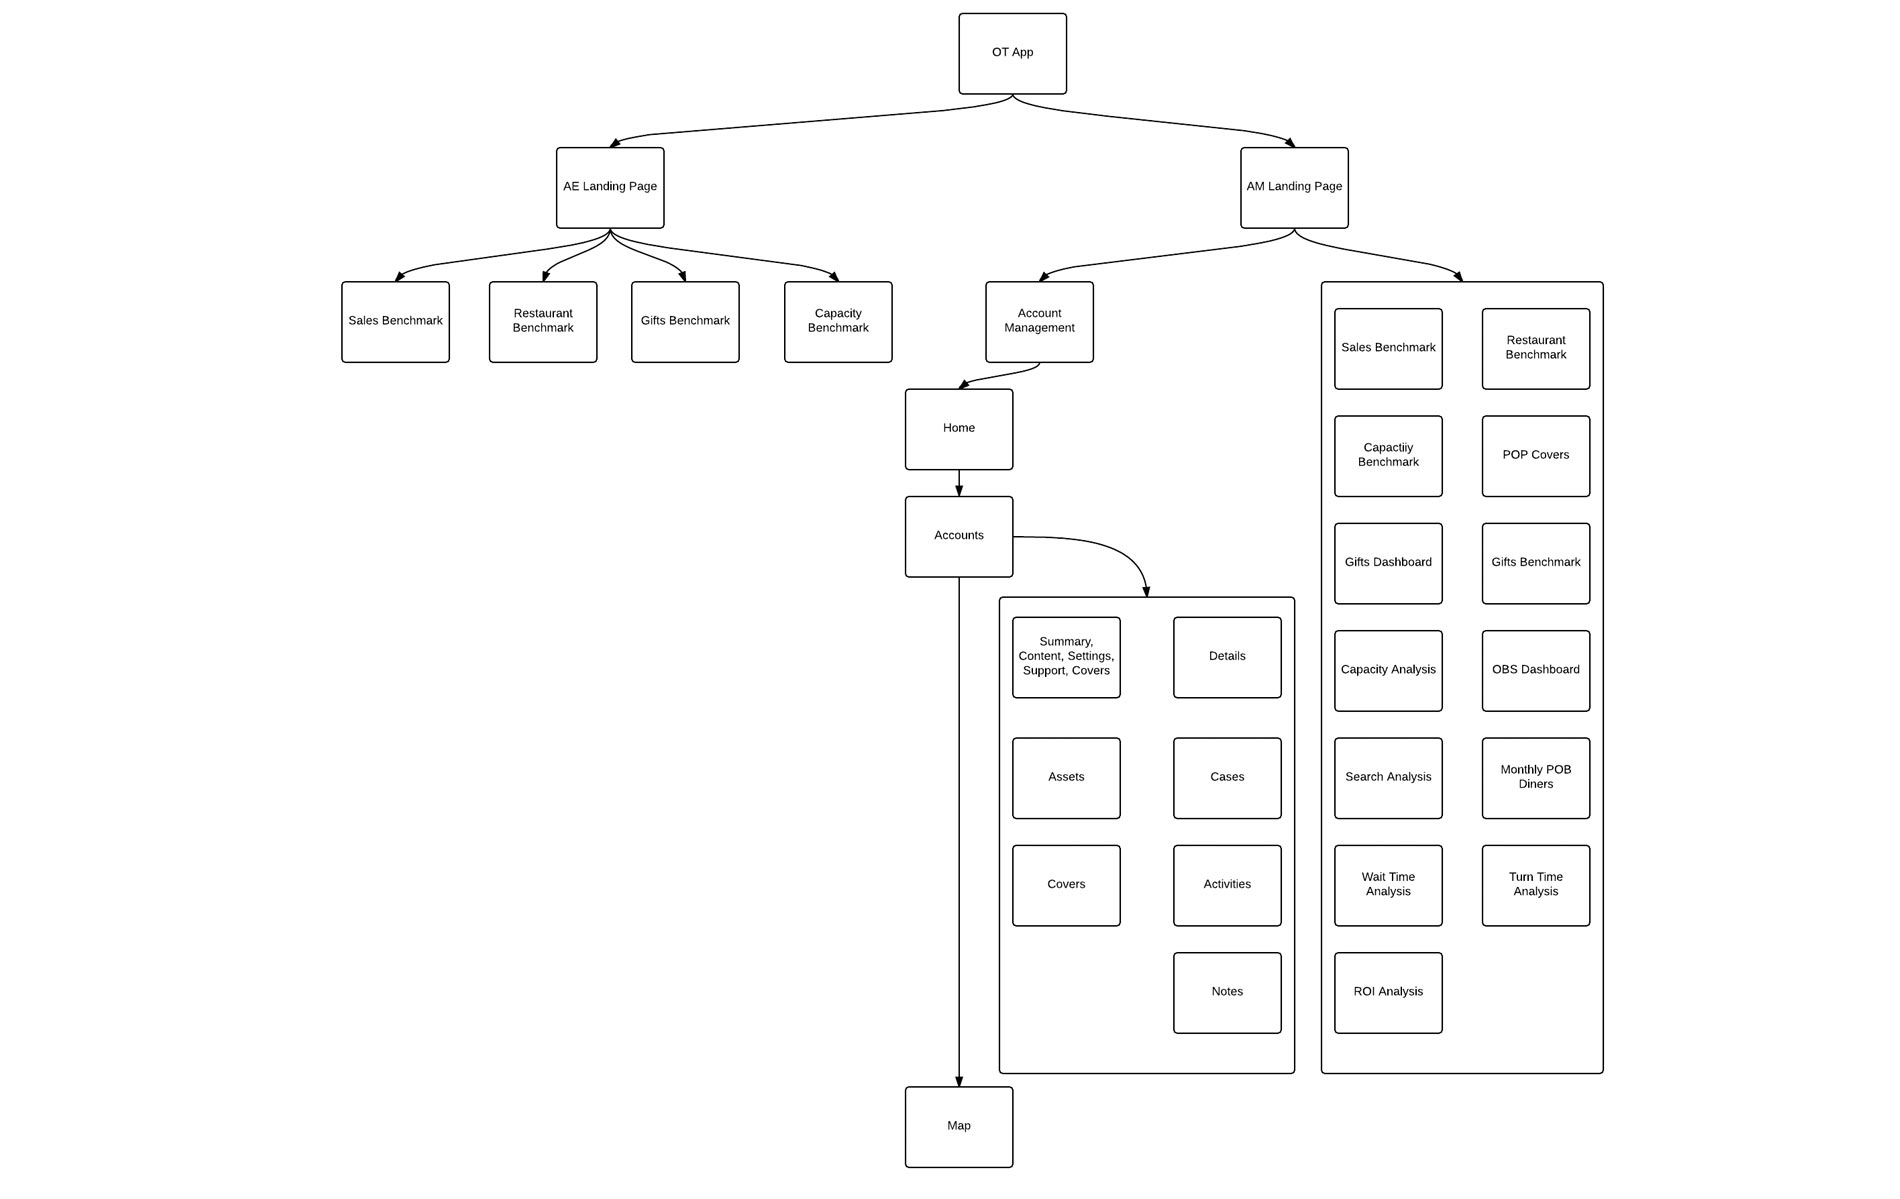 UX design process for a mobile analytics tool for an online reservation service